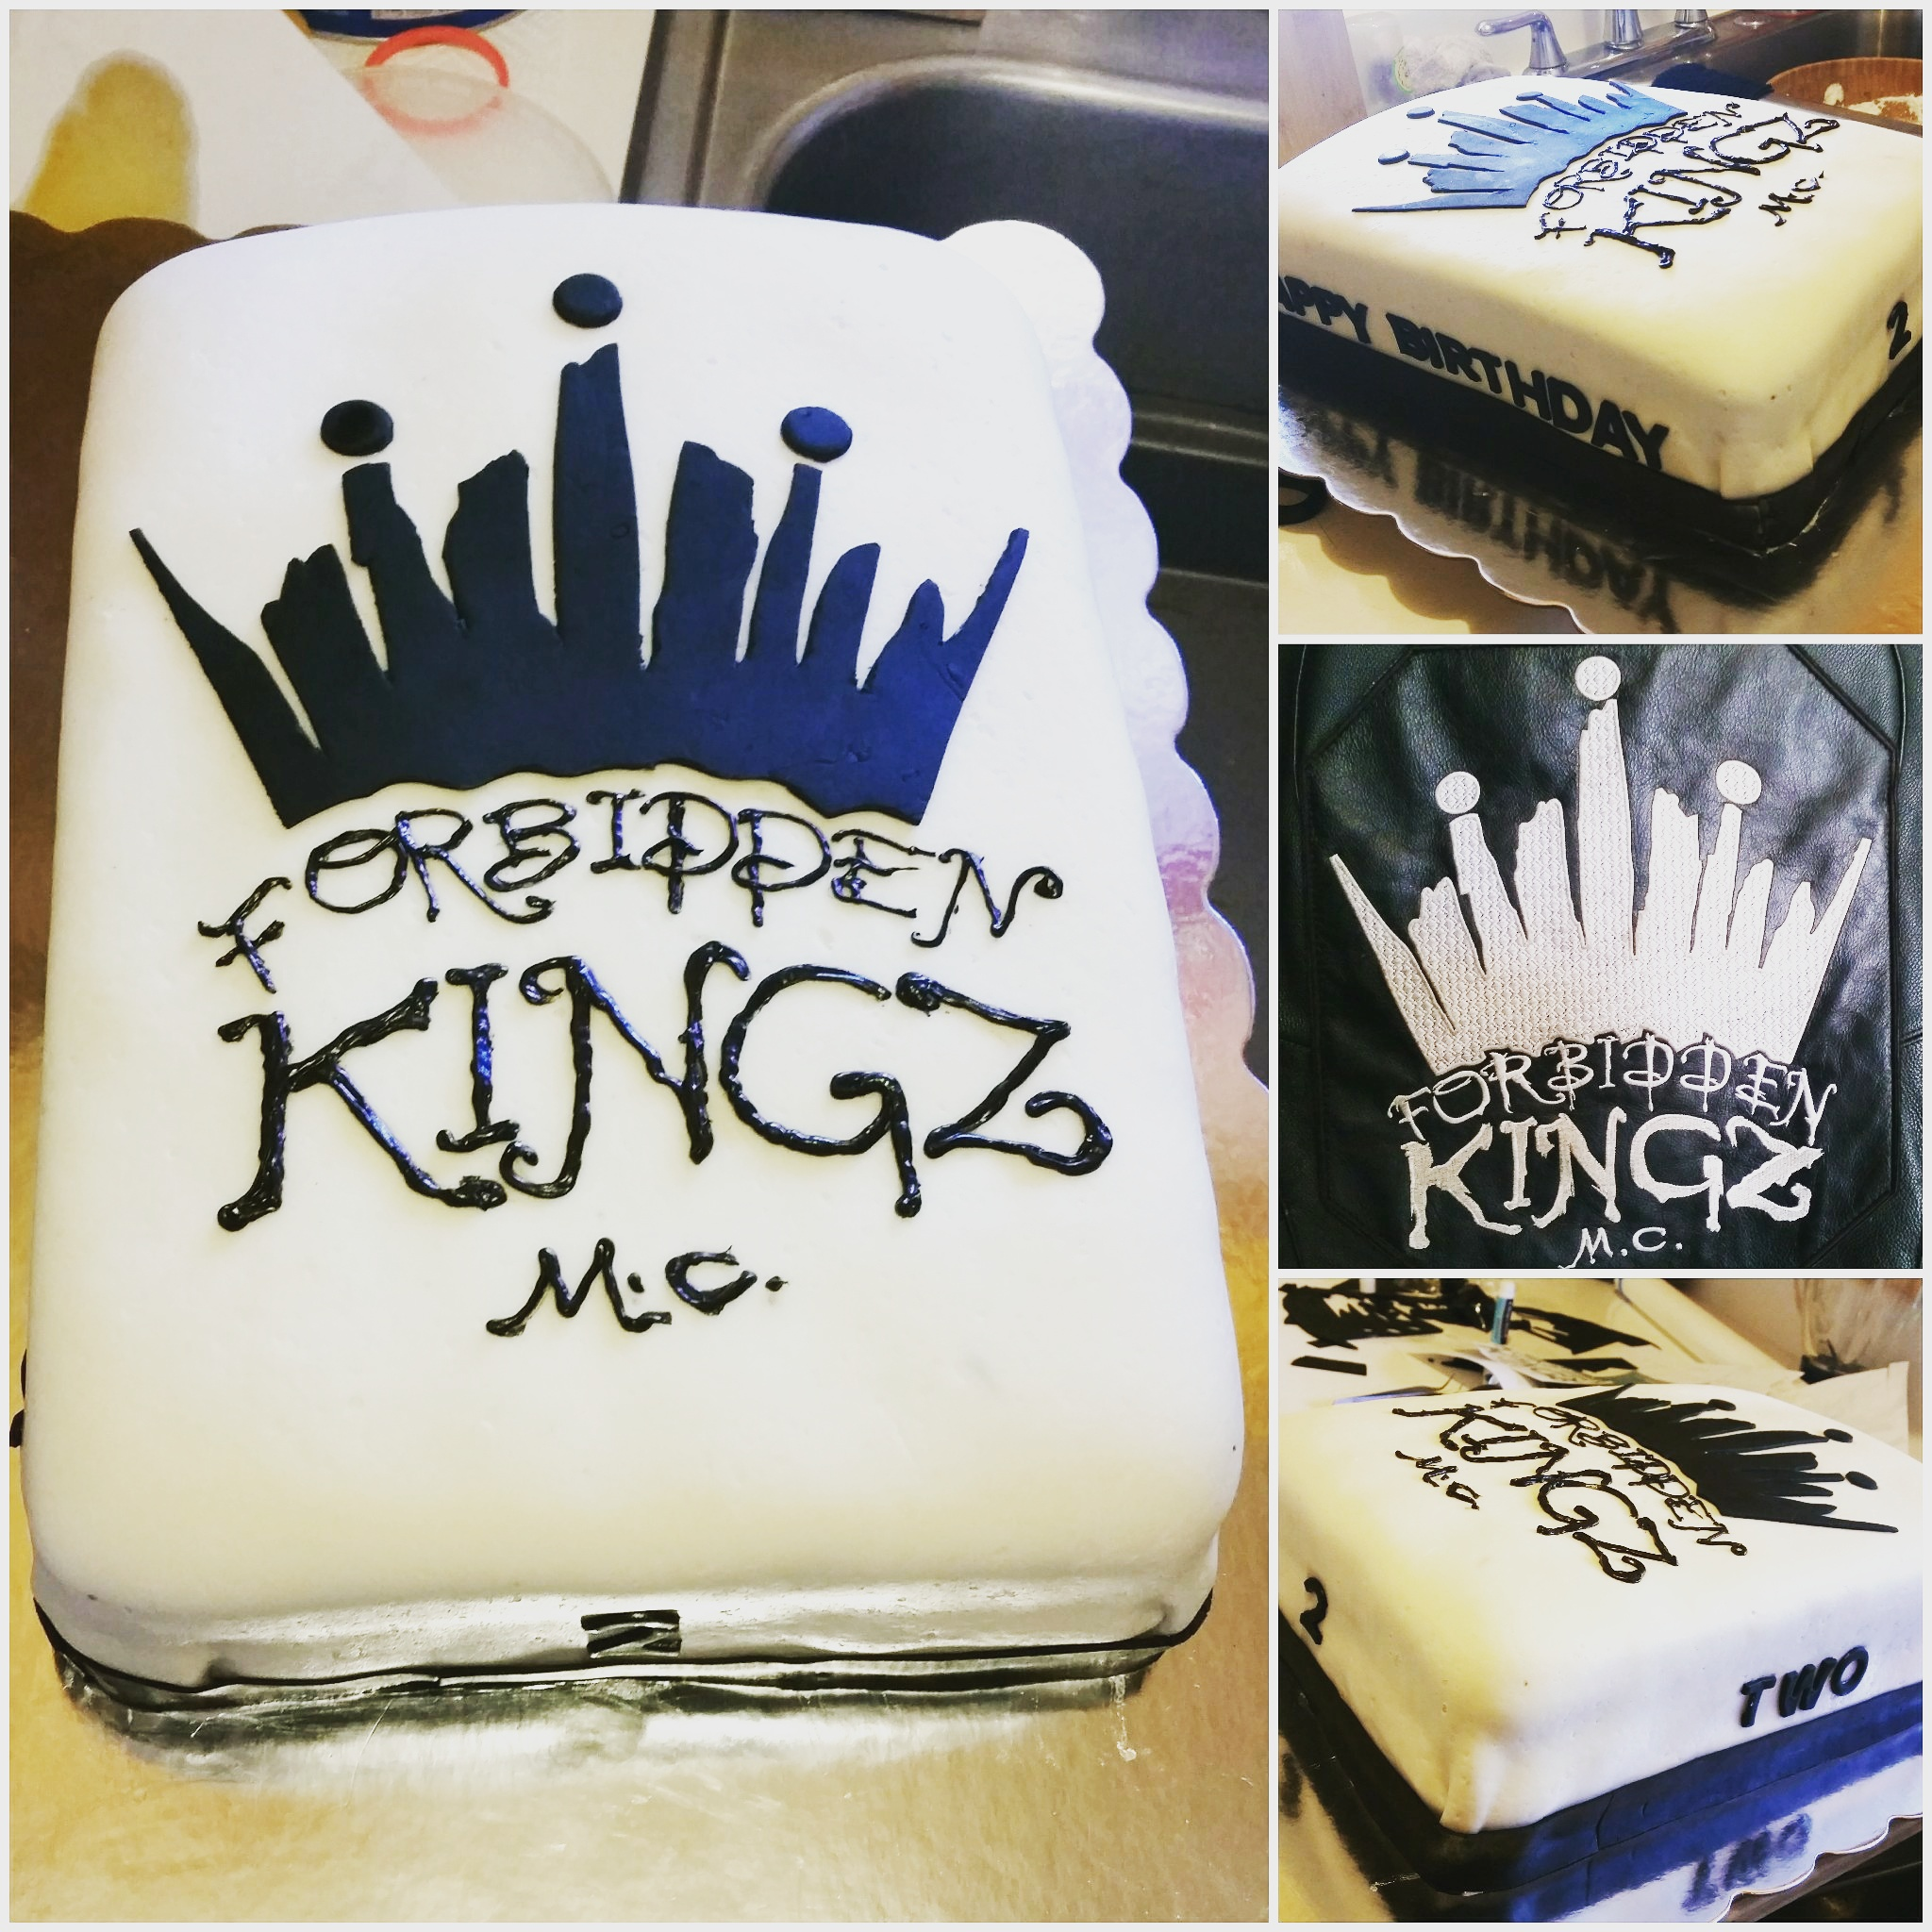 Motorcycle club cake forbidden kingz crown cake men cake